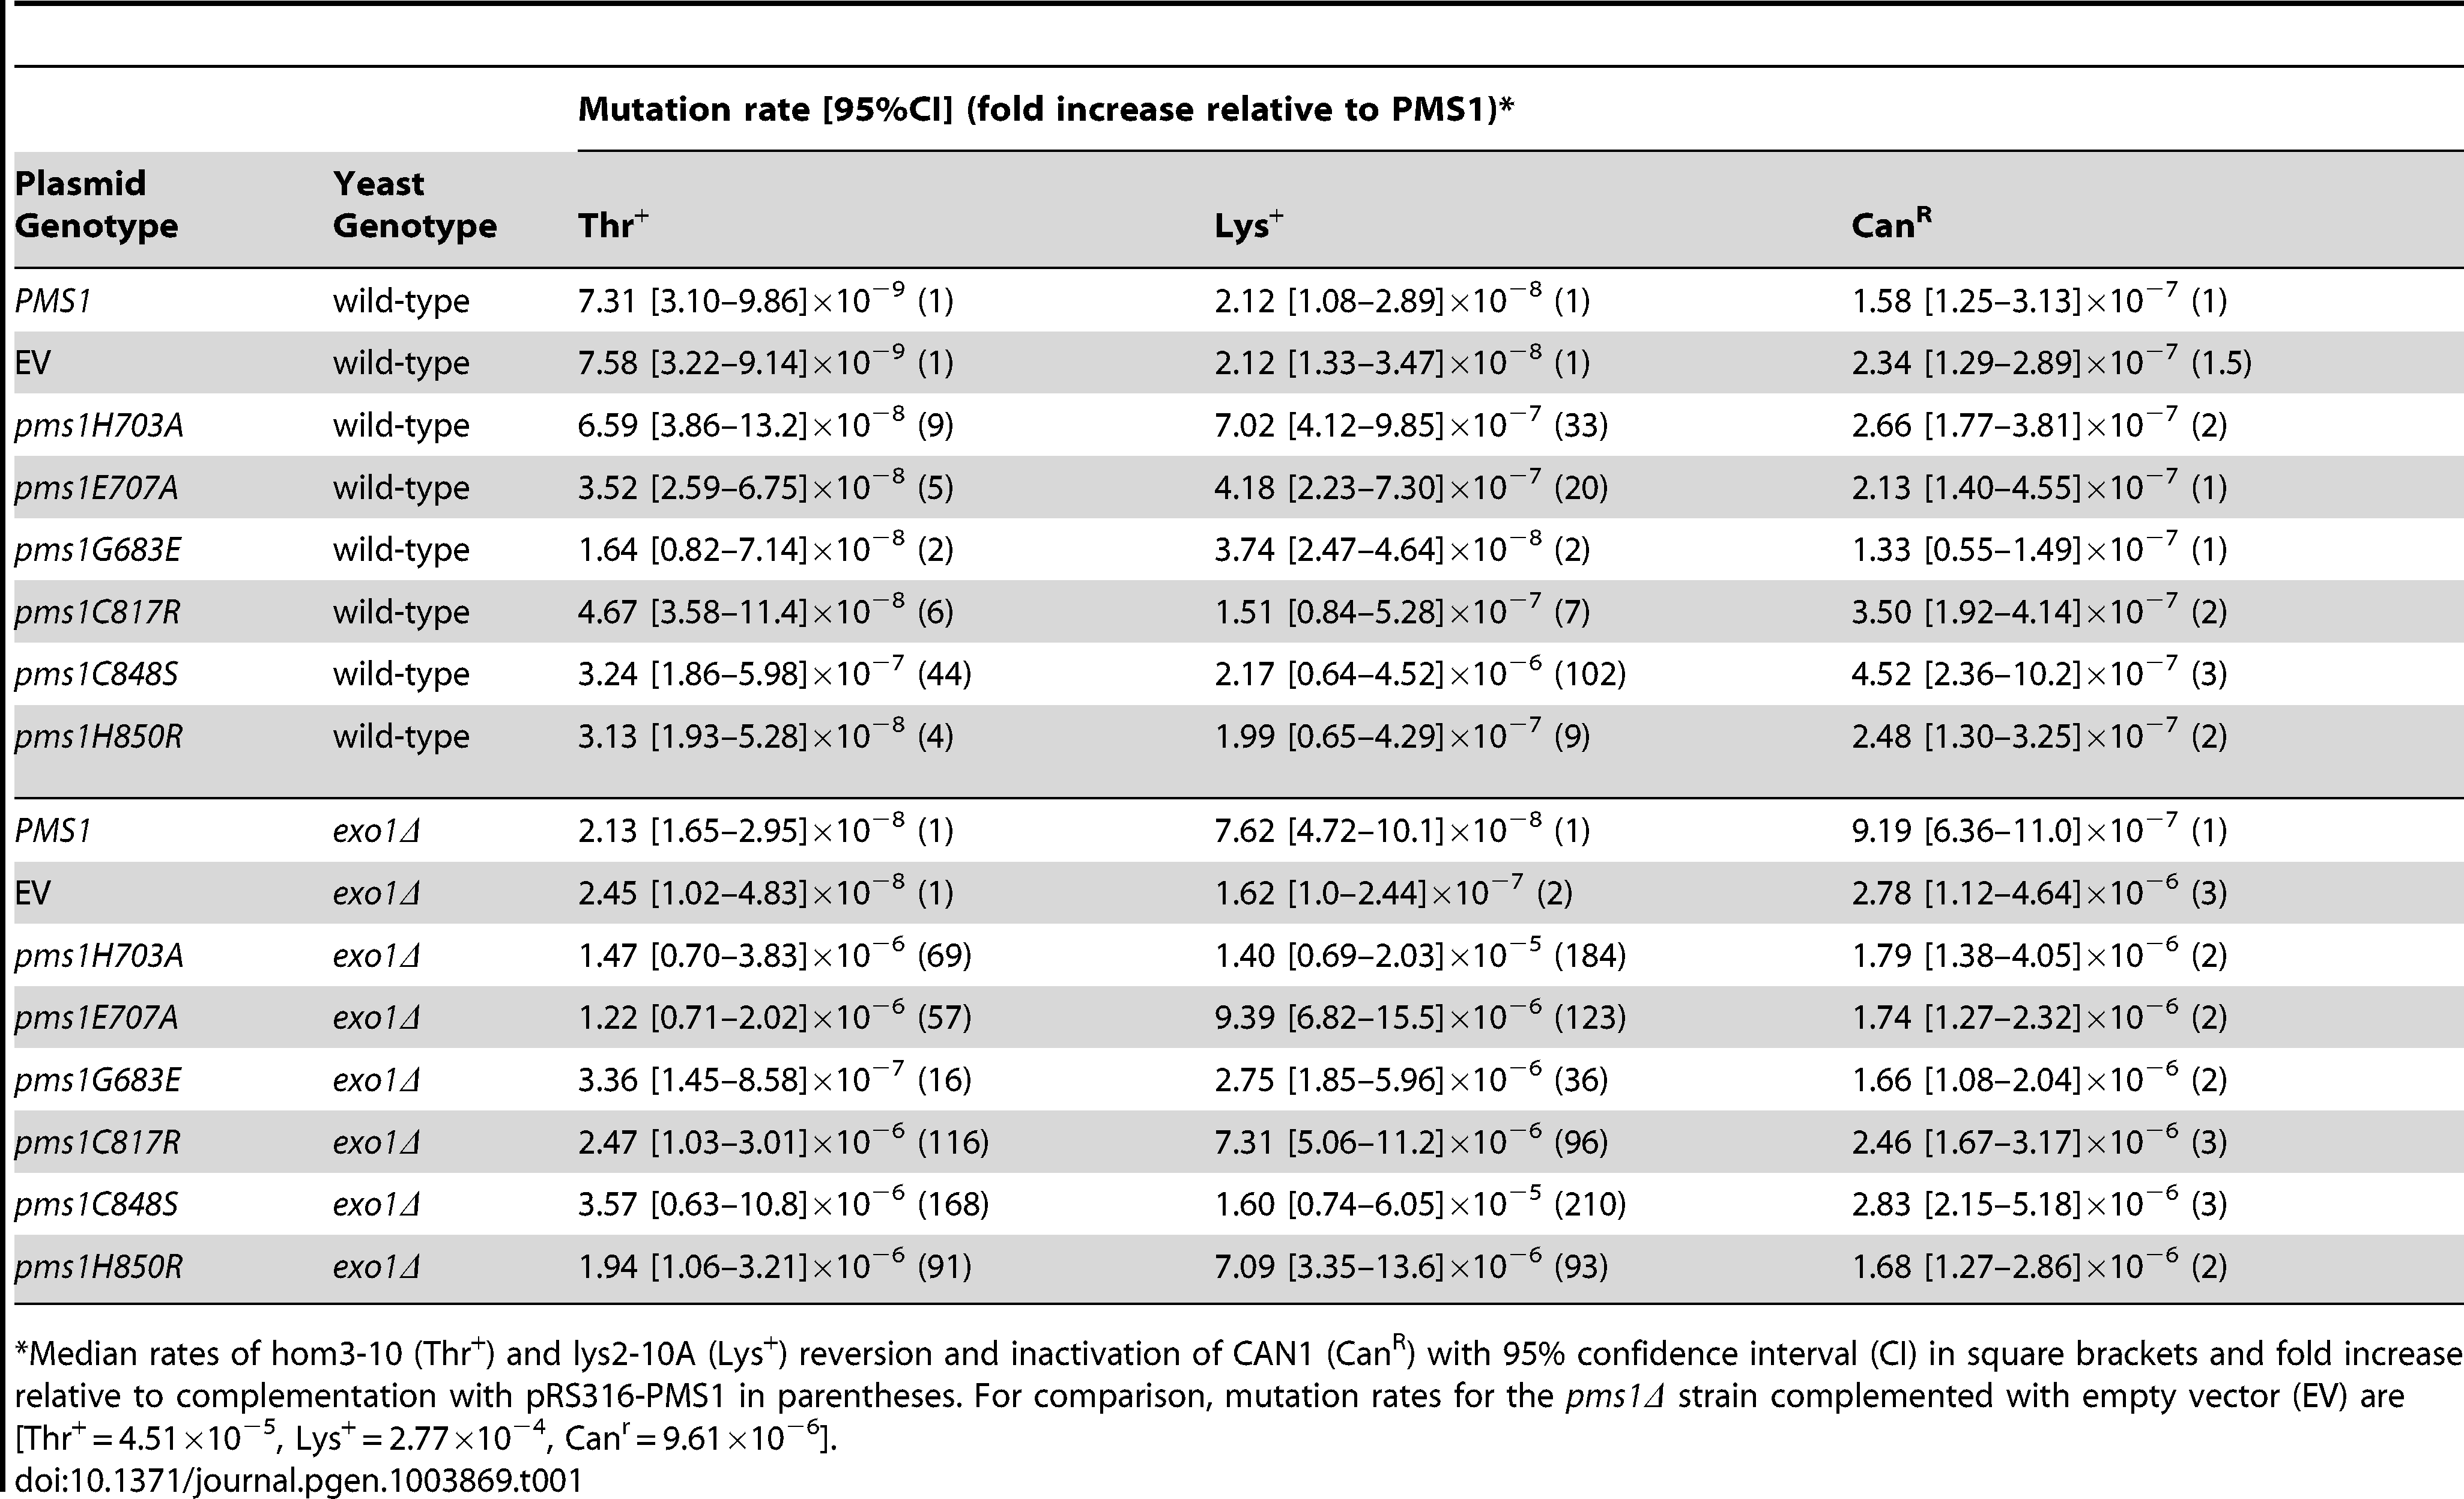 Mutation rates of <i>pms1</i> metal coordination mutants on a low-copy plasmid in wild-type and <i>exo1Δ</i> strains.